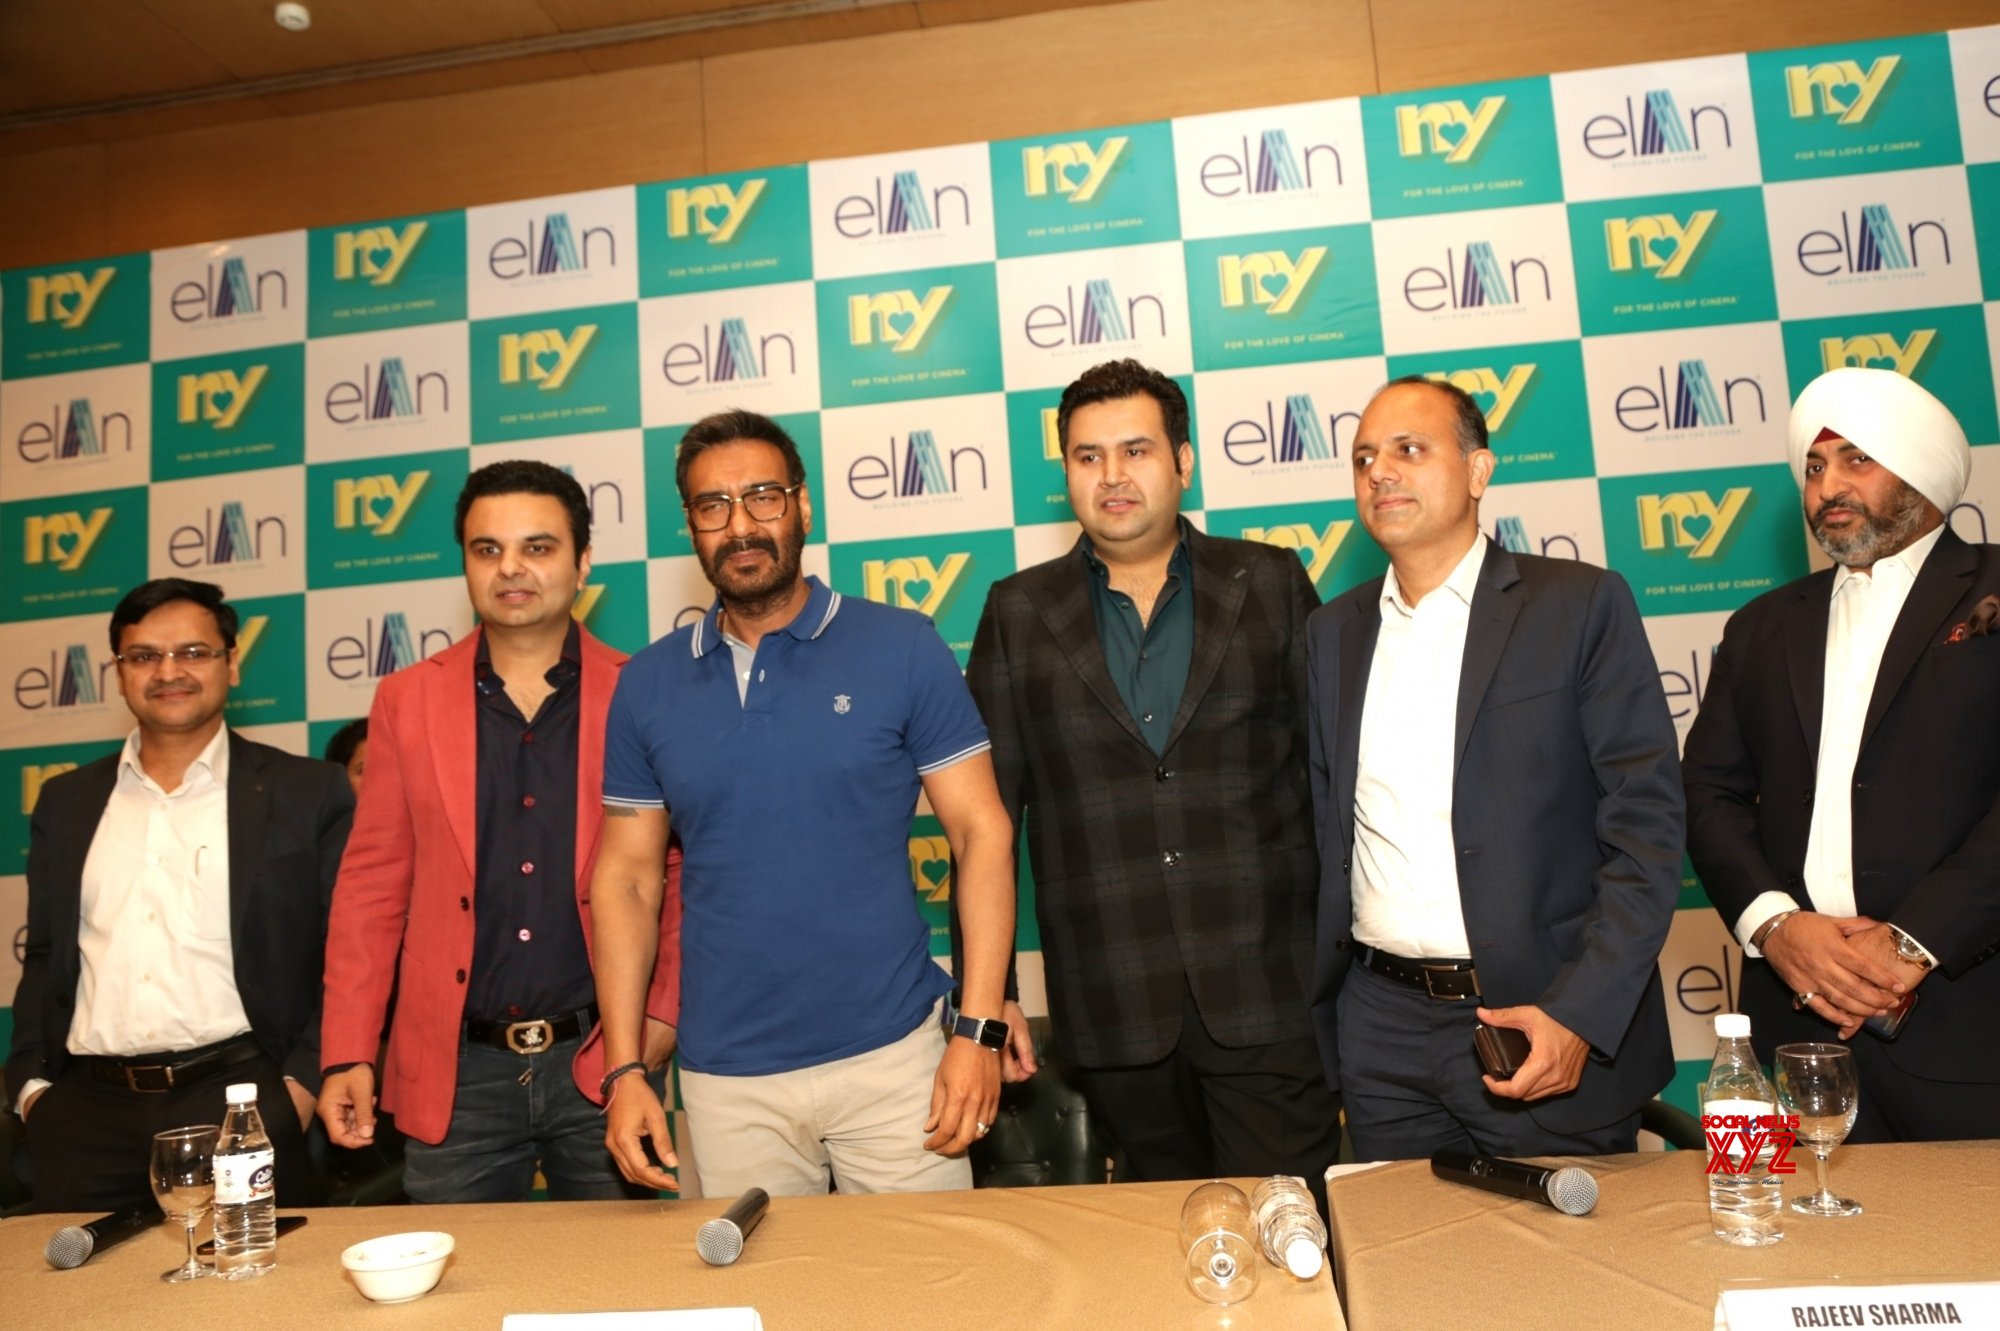 New Delhi: Ajay Devgn's press conference #Gallery